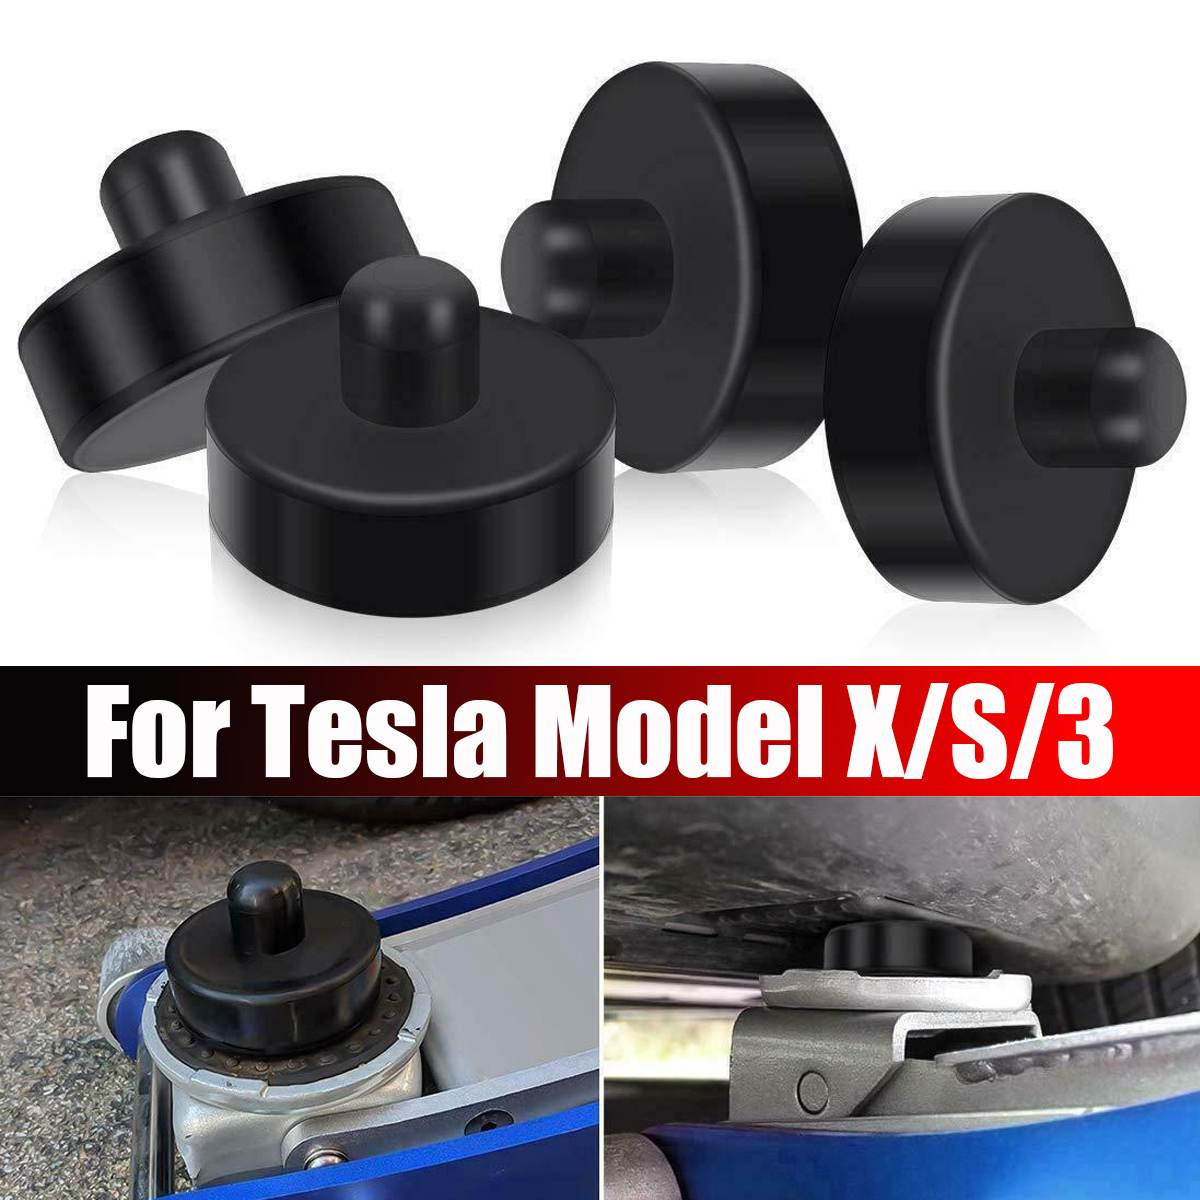 1/4Pcs Black Rubber Jack Lift Point Pad Adapter Jack Pad Tool Chassis Jack Car Styling Accessories For Tesla Model X/S/3